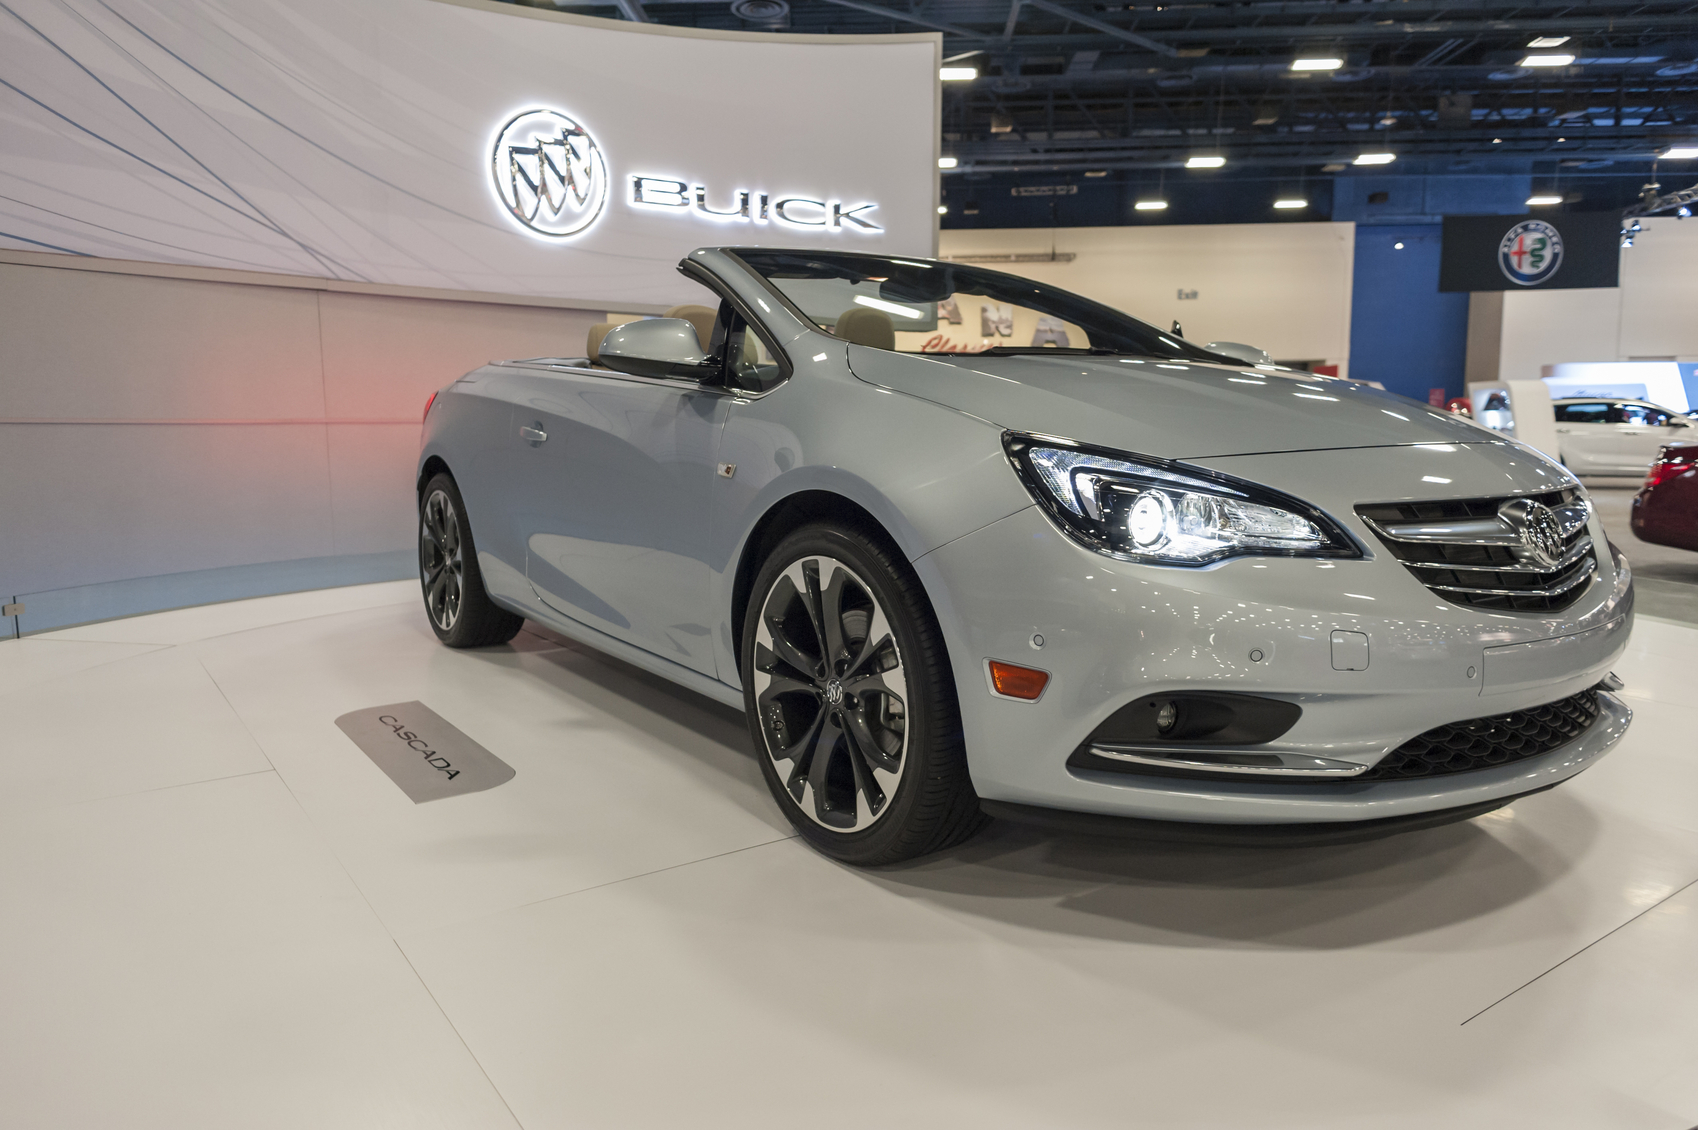 Buick Used Cars